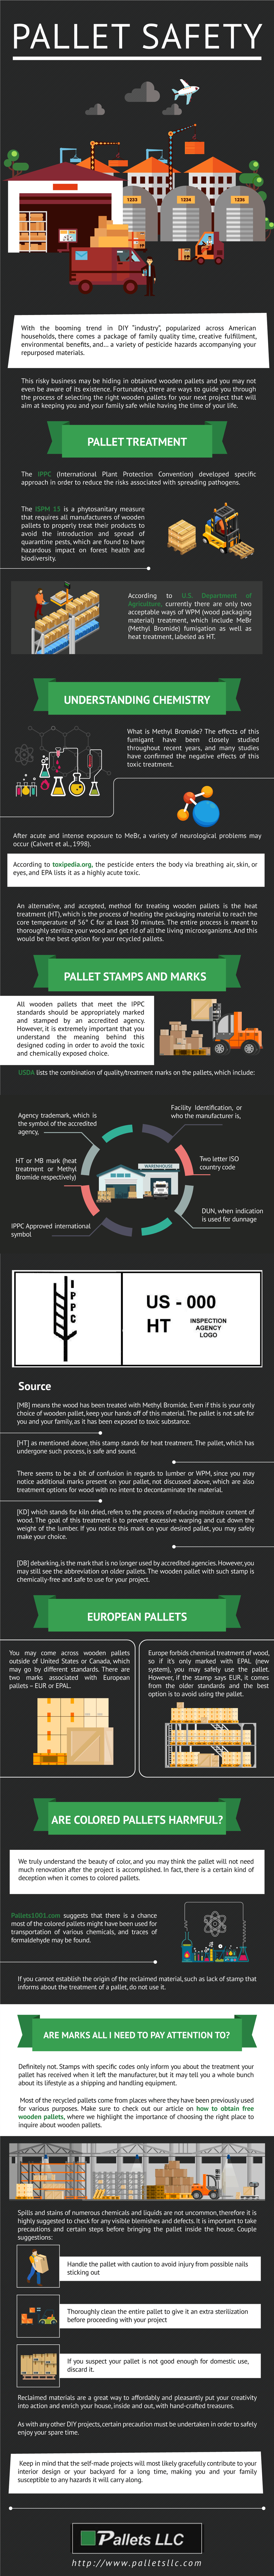 pallets safety infographic